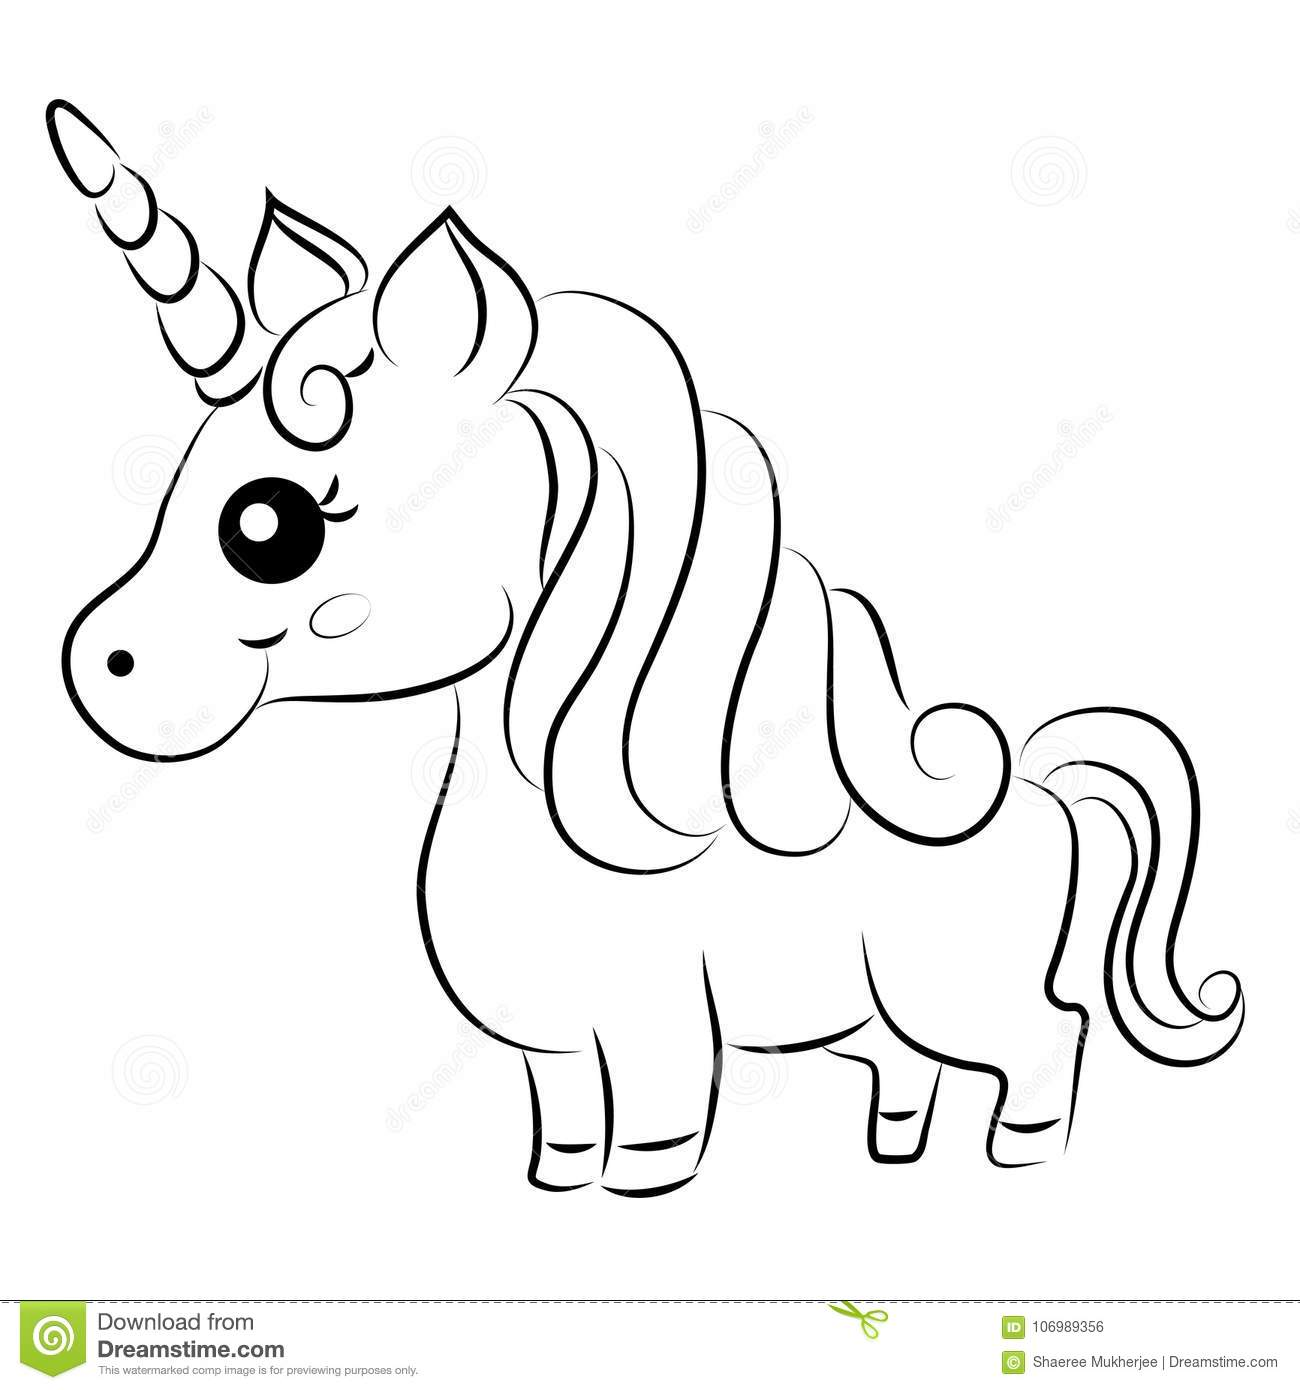 cartoon unicorn coloring pages cute cartoon vector unicorn coloring page stock vector coloring unicorn cartoon pages